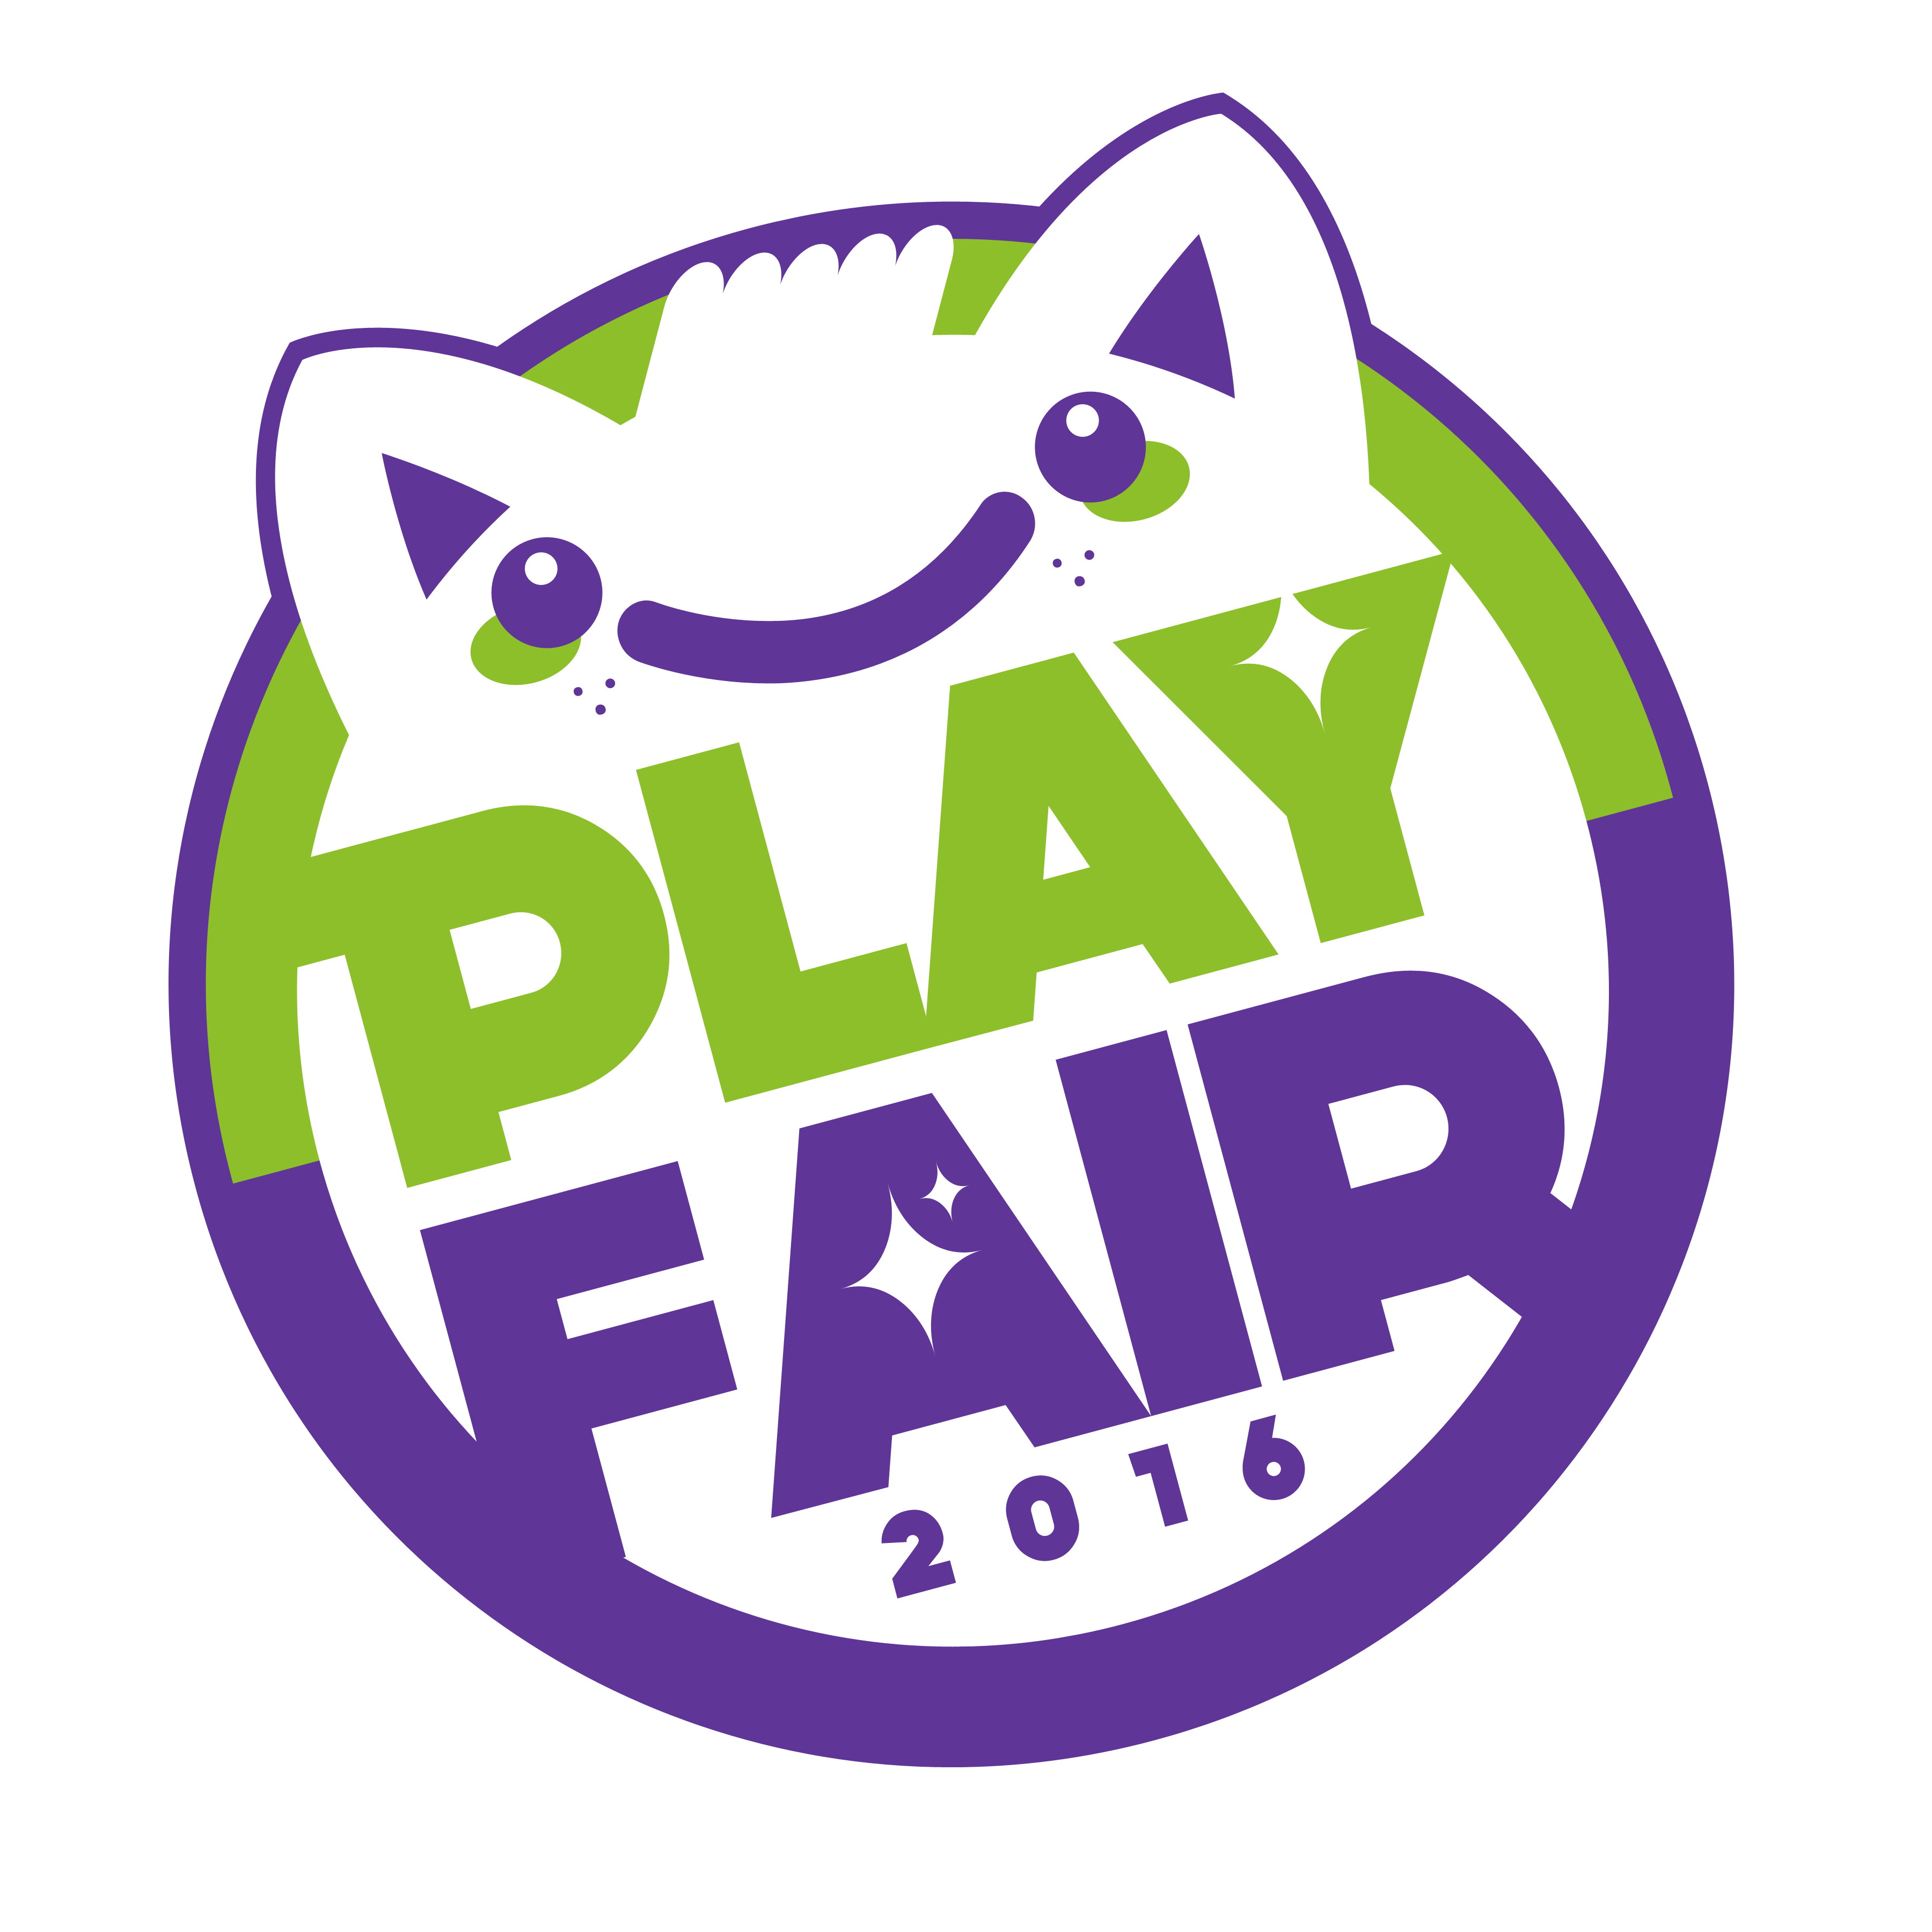 Games clipart fair game. Engaged family gaming is